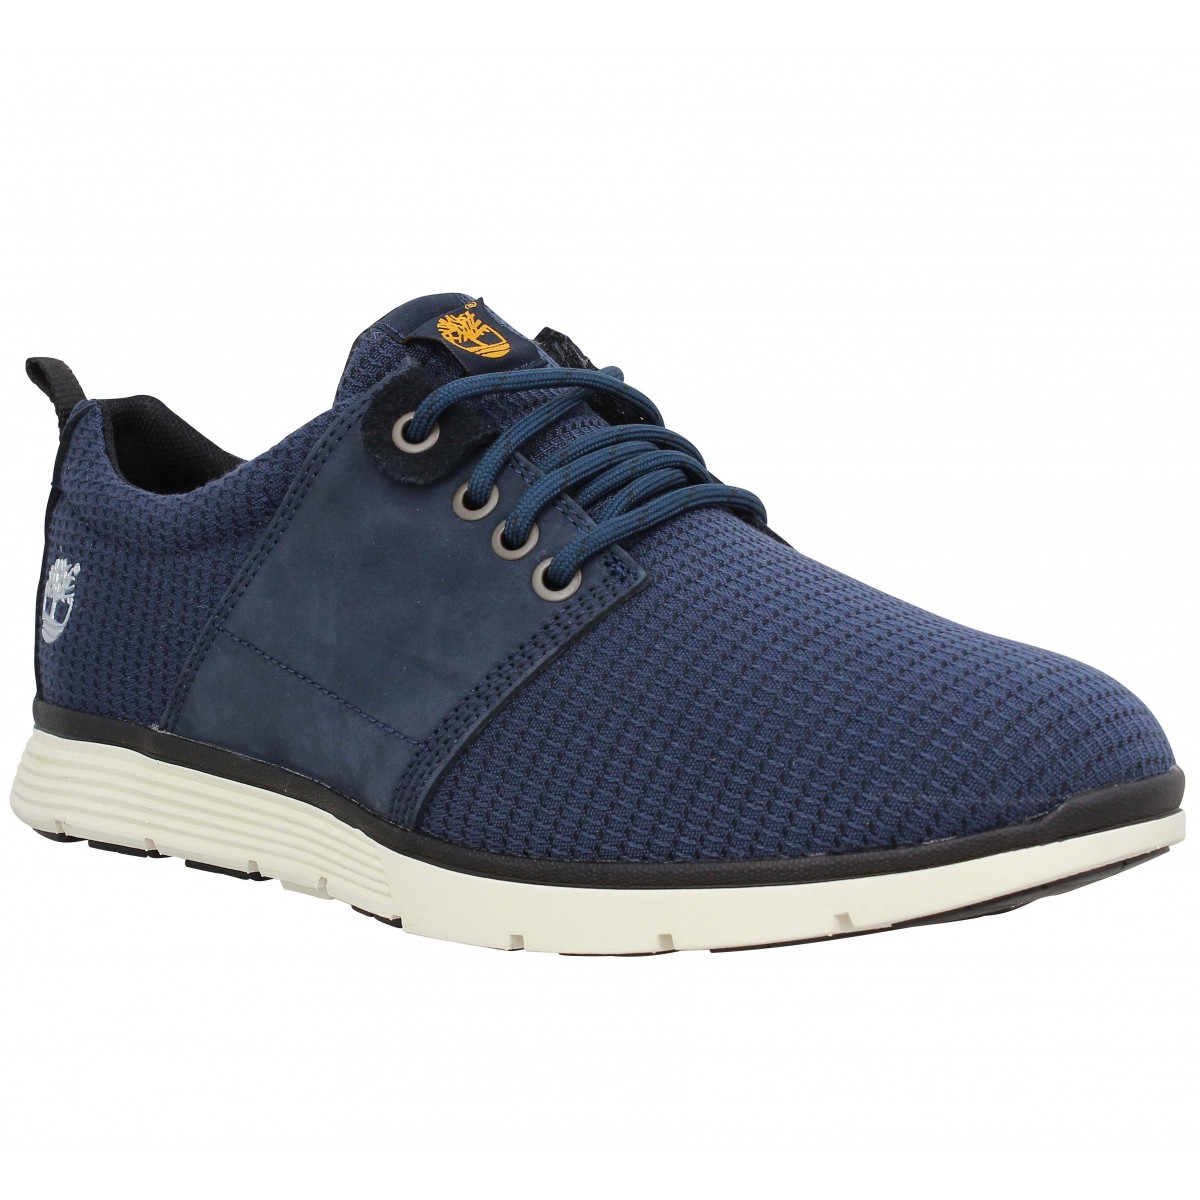 Baskets TIMBERLAND Killington Oxford toile Homme Navy